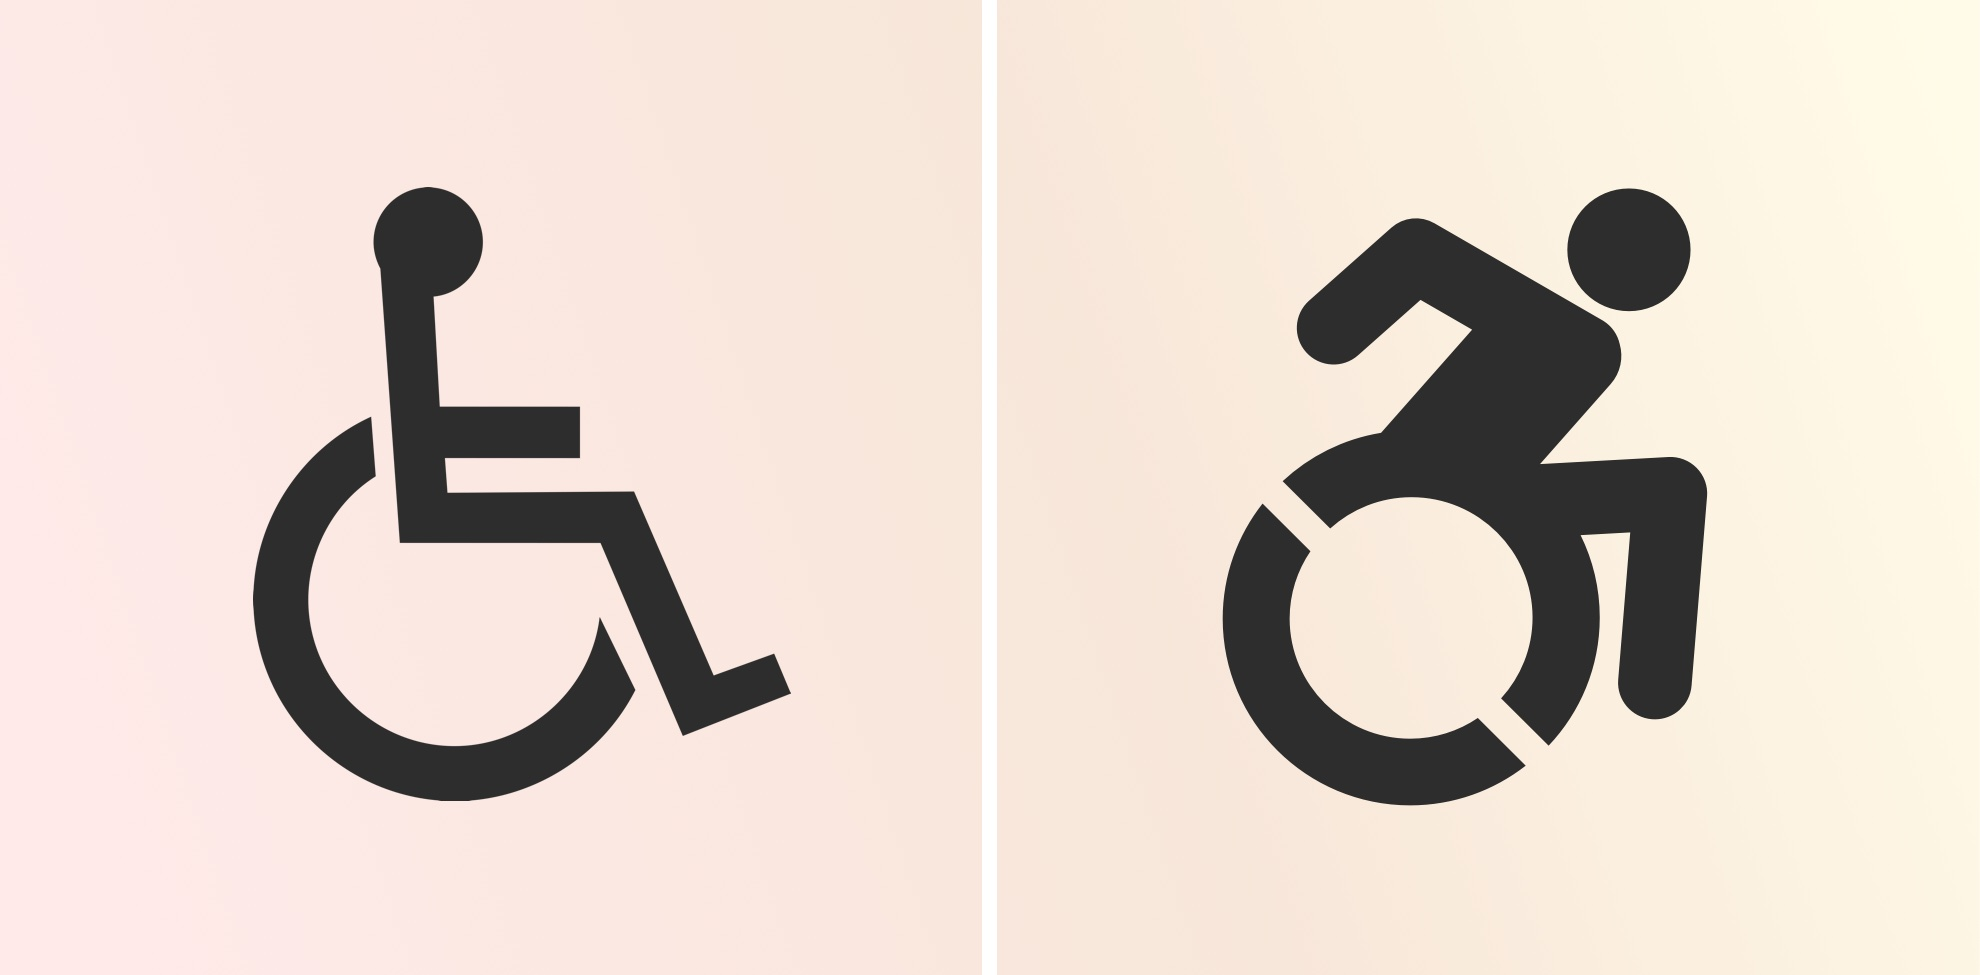 A traditional icon of a person using a wheelchair placed next to a newer icon showing a person leaning forward in a more active pose.